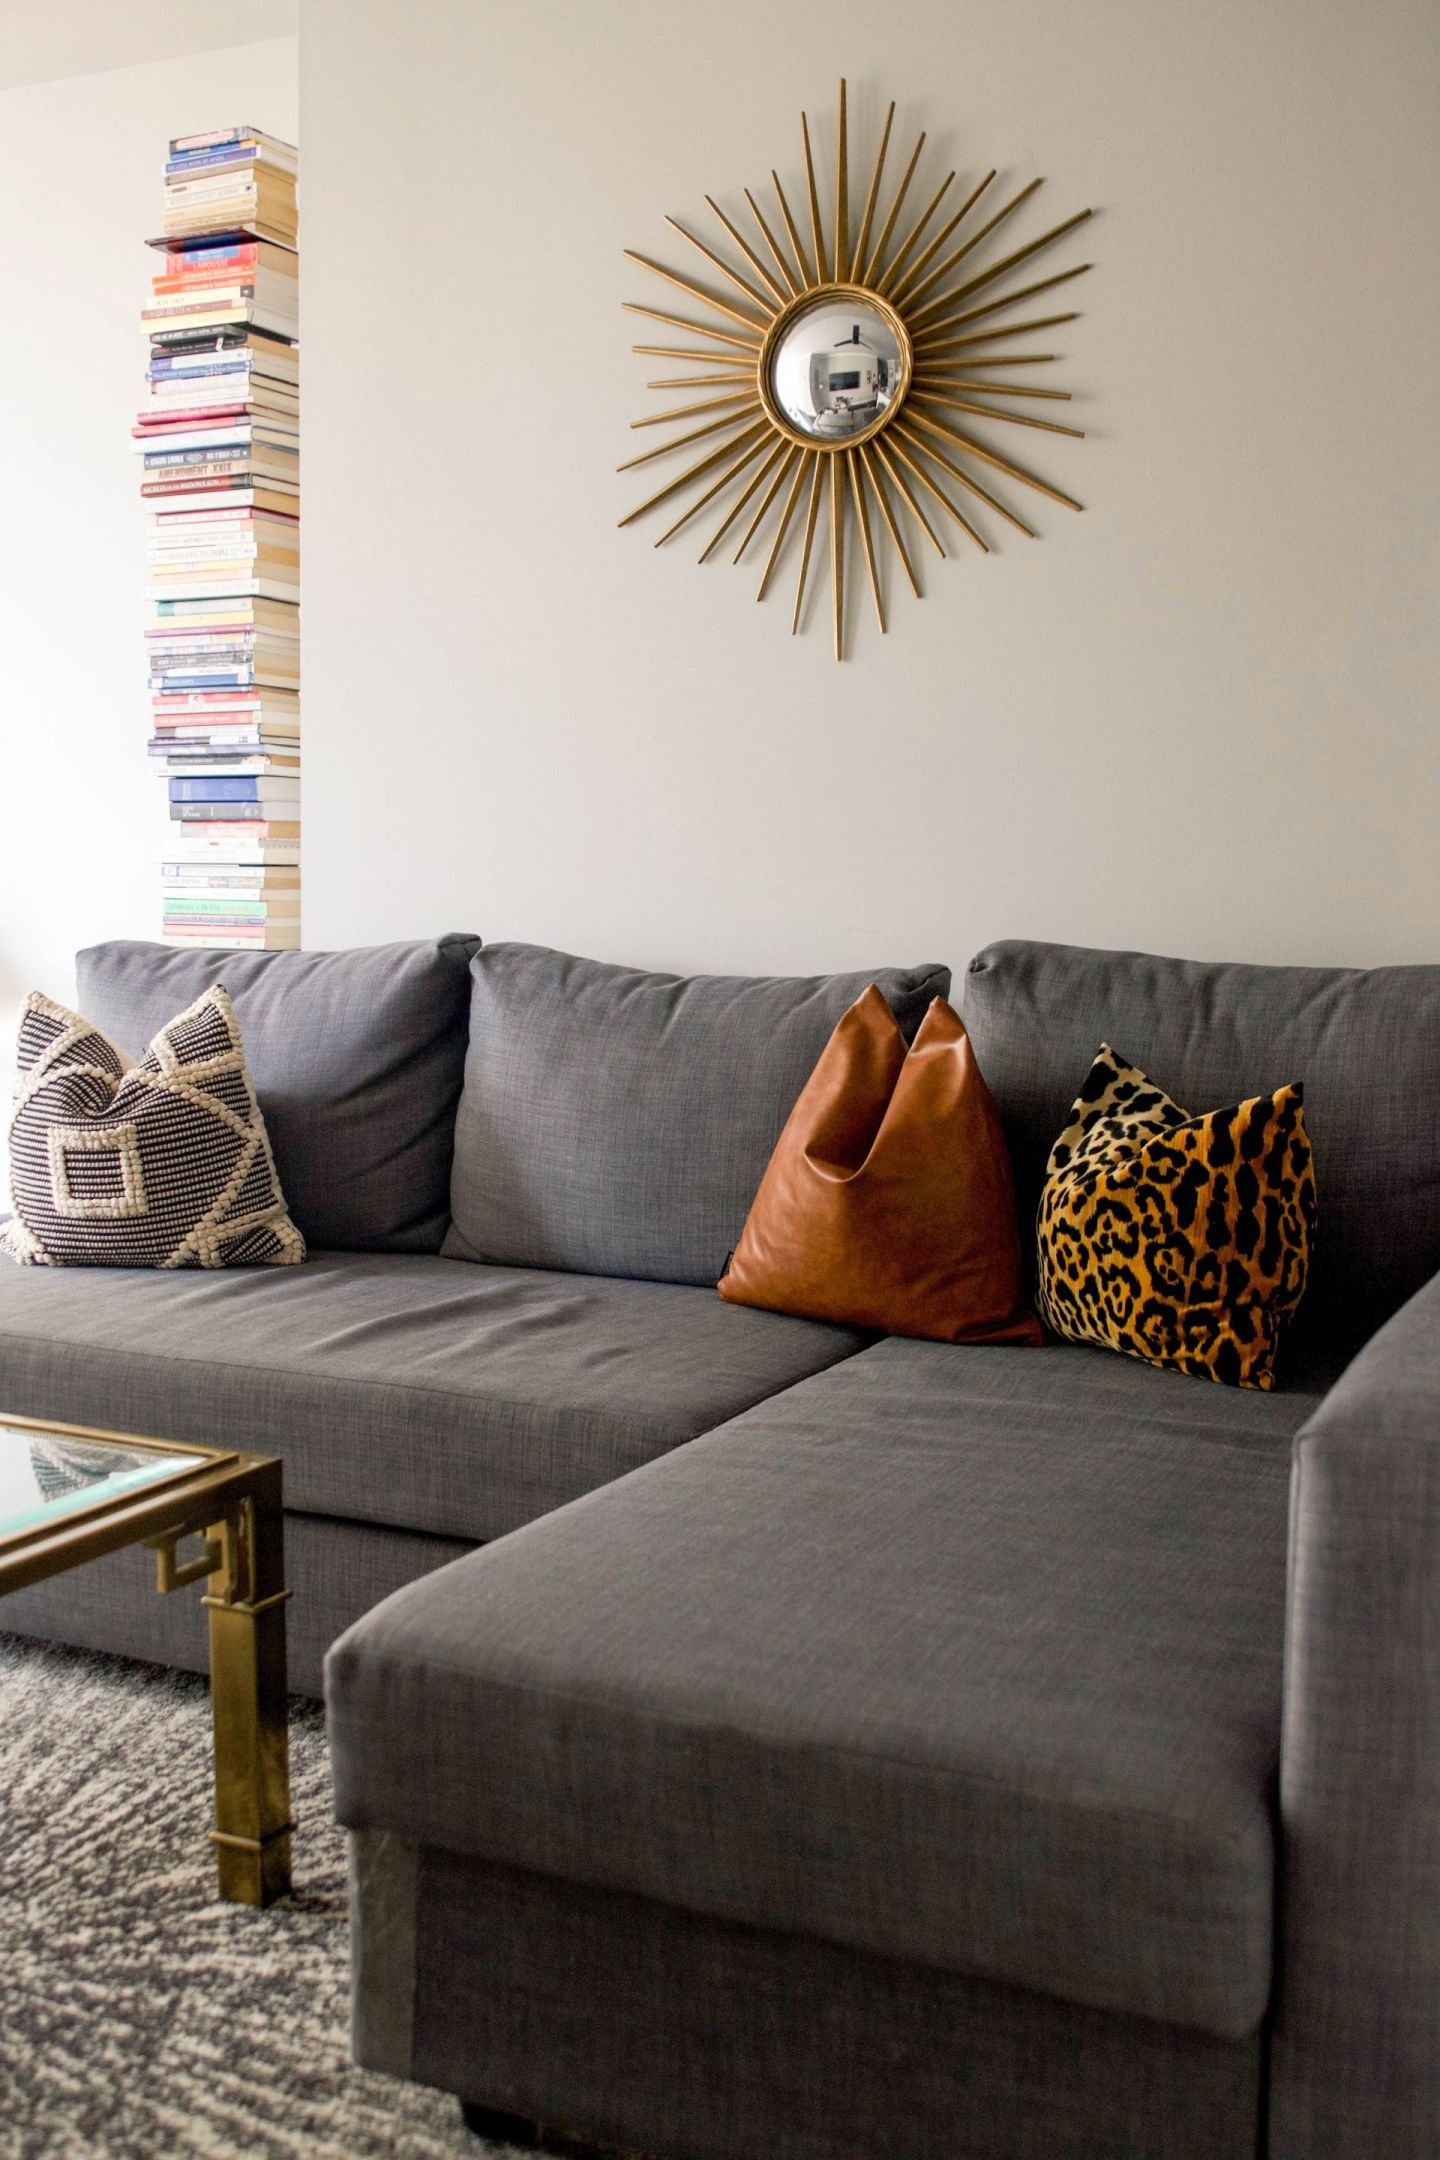 ikea friheten sectional - ikea friheten sectional review - ikea friheten sleeper